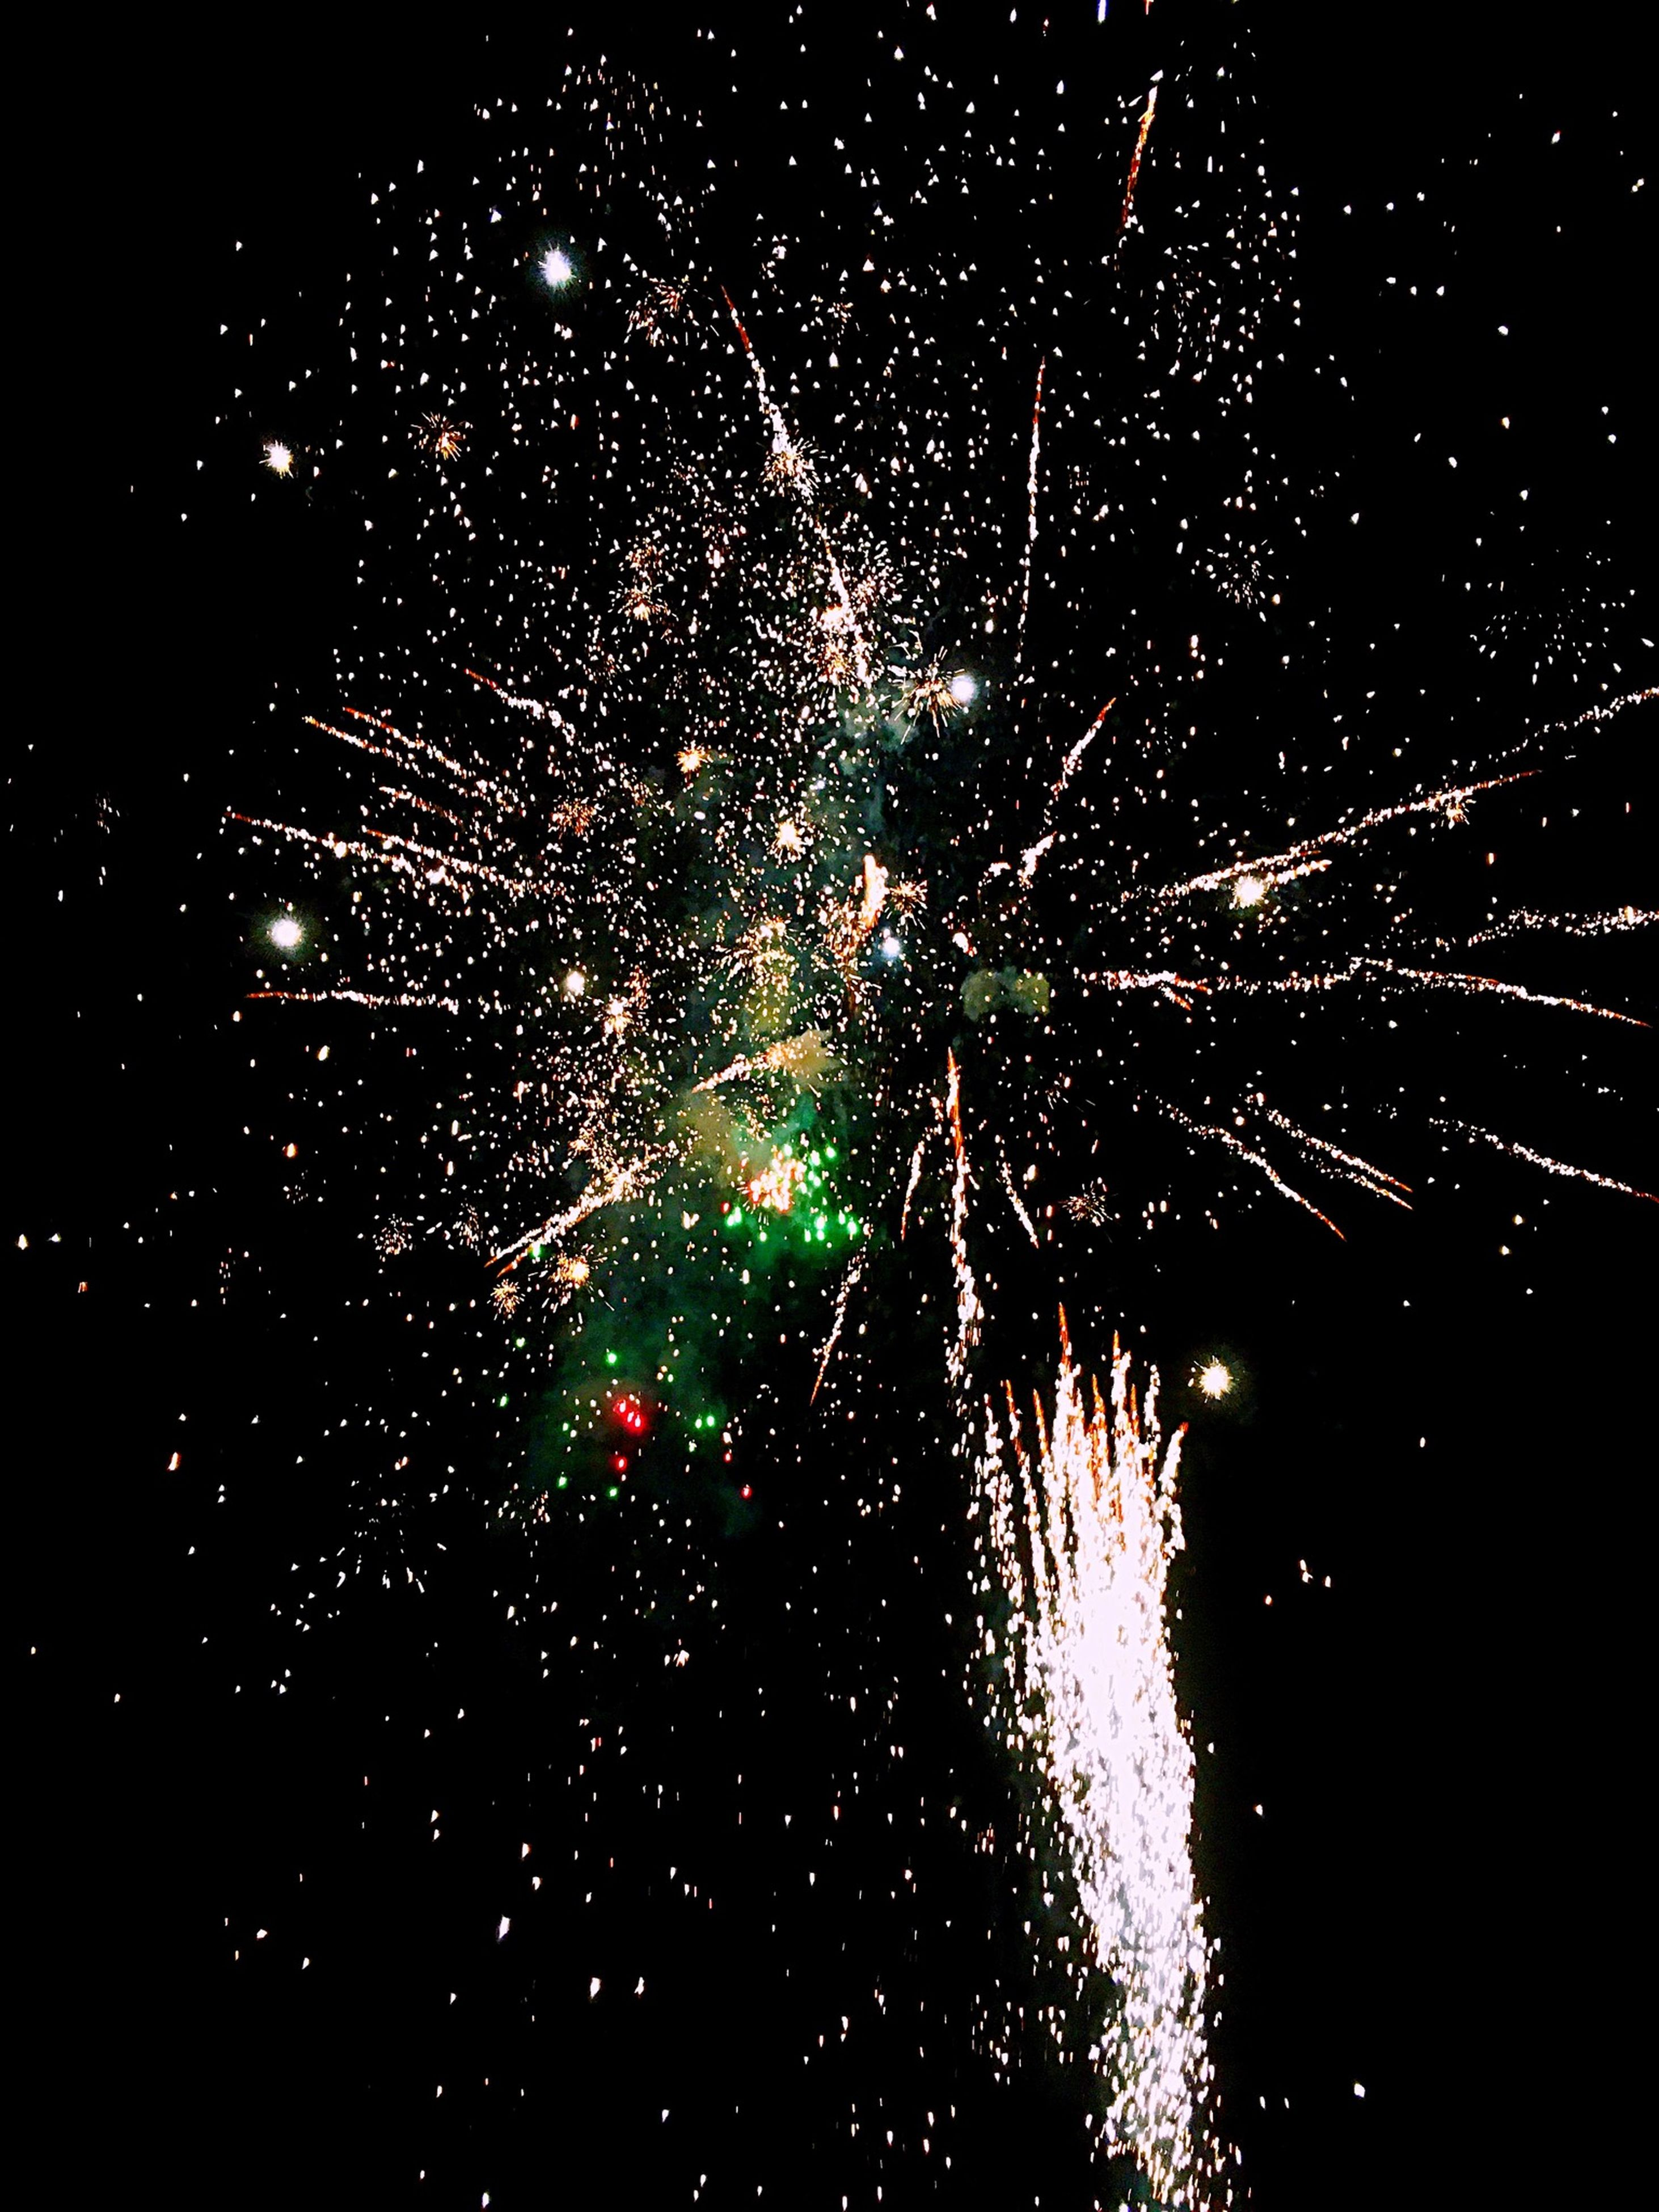 night, illuminated, firework display, long exposure, celebration, firework - man made object, exploding, sparks, motion, glowing, firework, arts culture and entertainment, event, low angle view, blurred motion, entertainment, sky, celebration event, light, outdoors